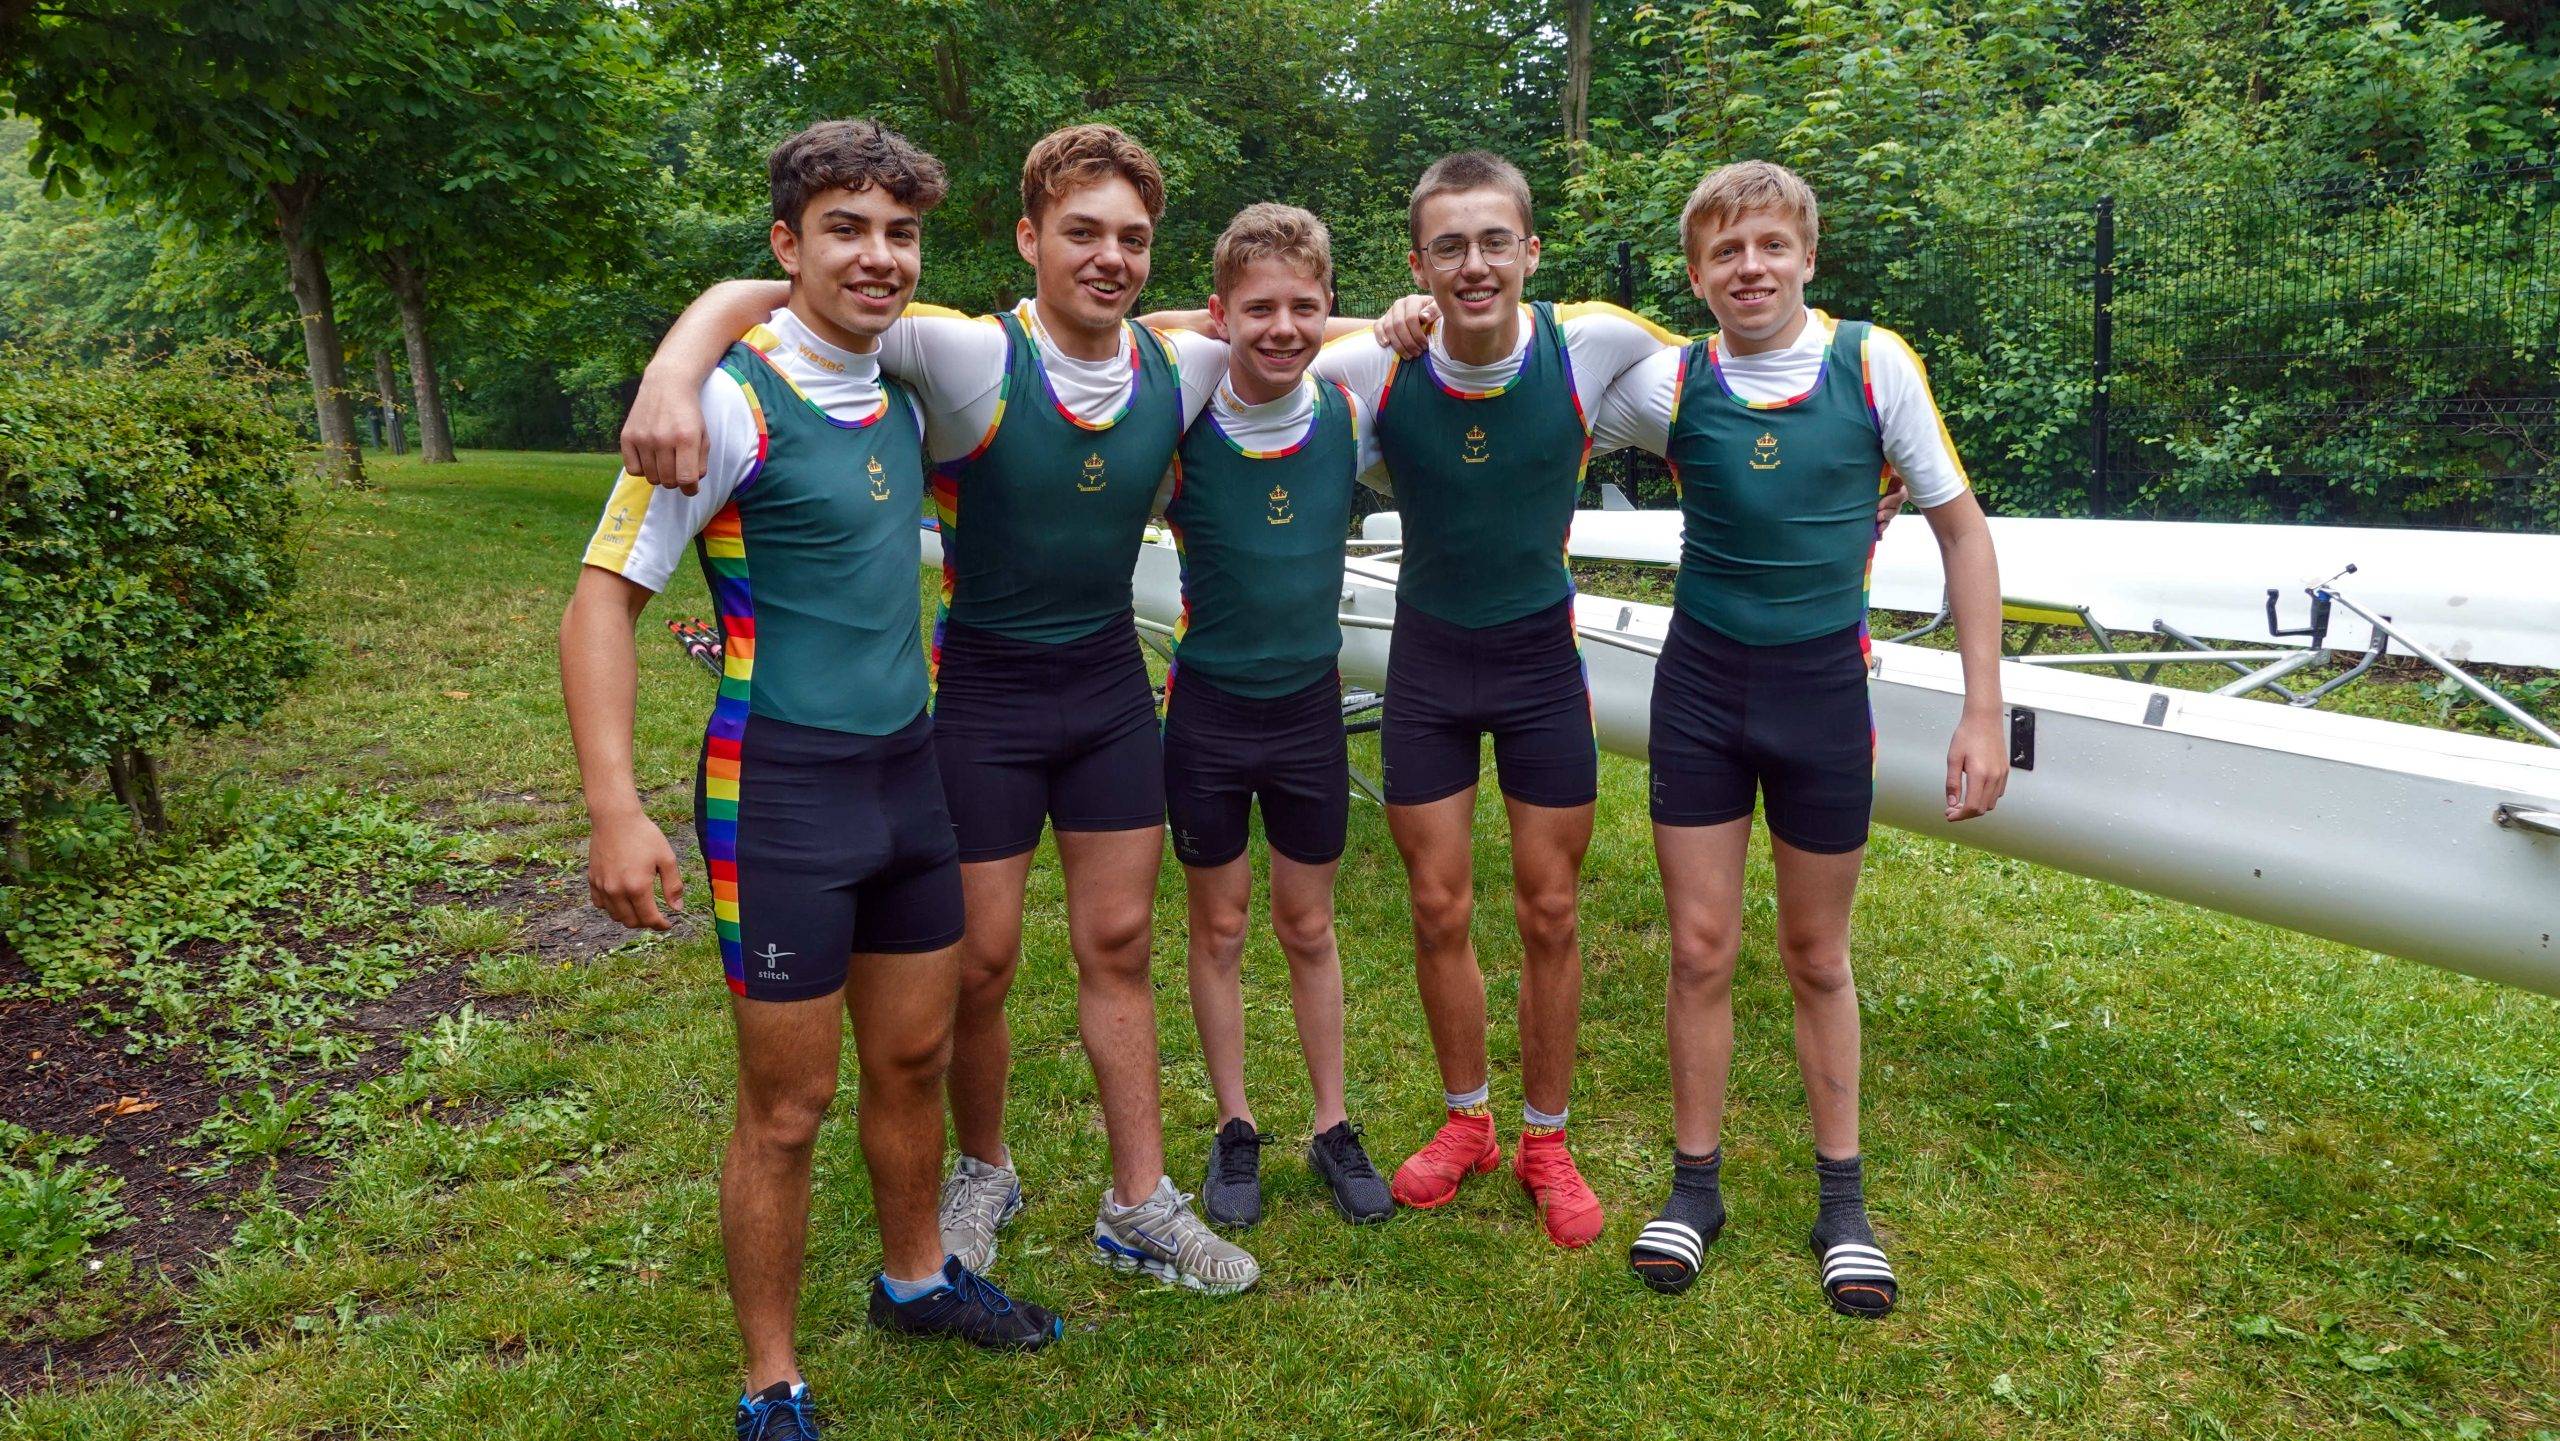 Proudly sporting their Pride kit are the Year 10 rowing crew who competed last weekend at Marlow Regatta. From left: Pedro Theriaga, Sanad Al Qahef, Joshua Claassen, Jimmy Harlow and Aticus Chute.